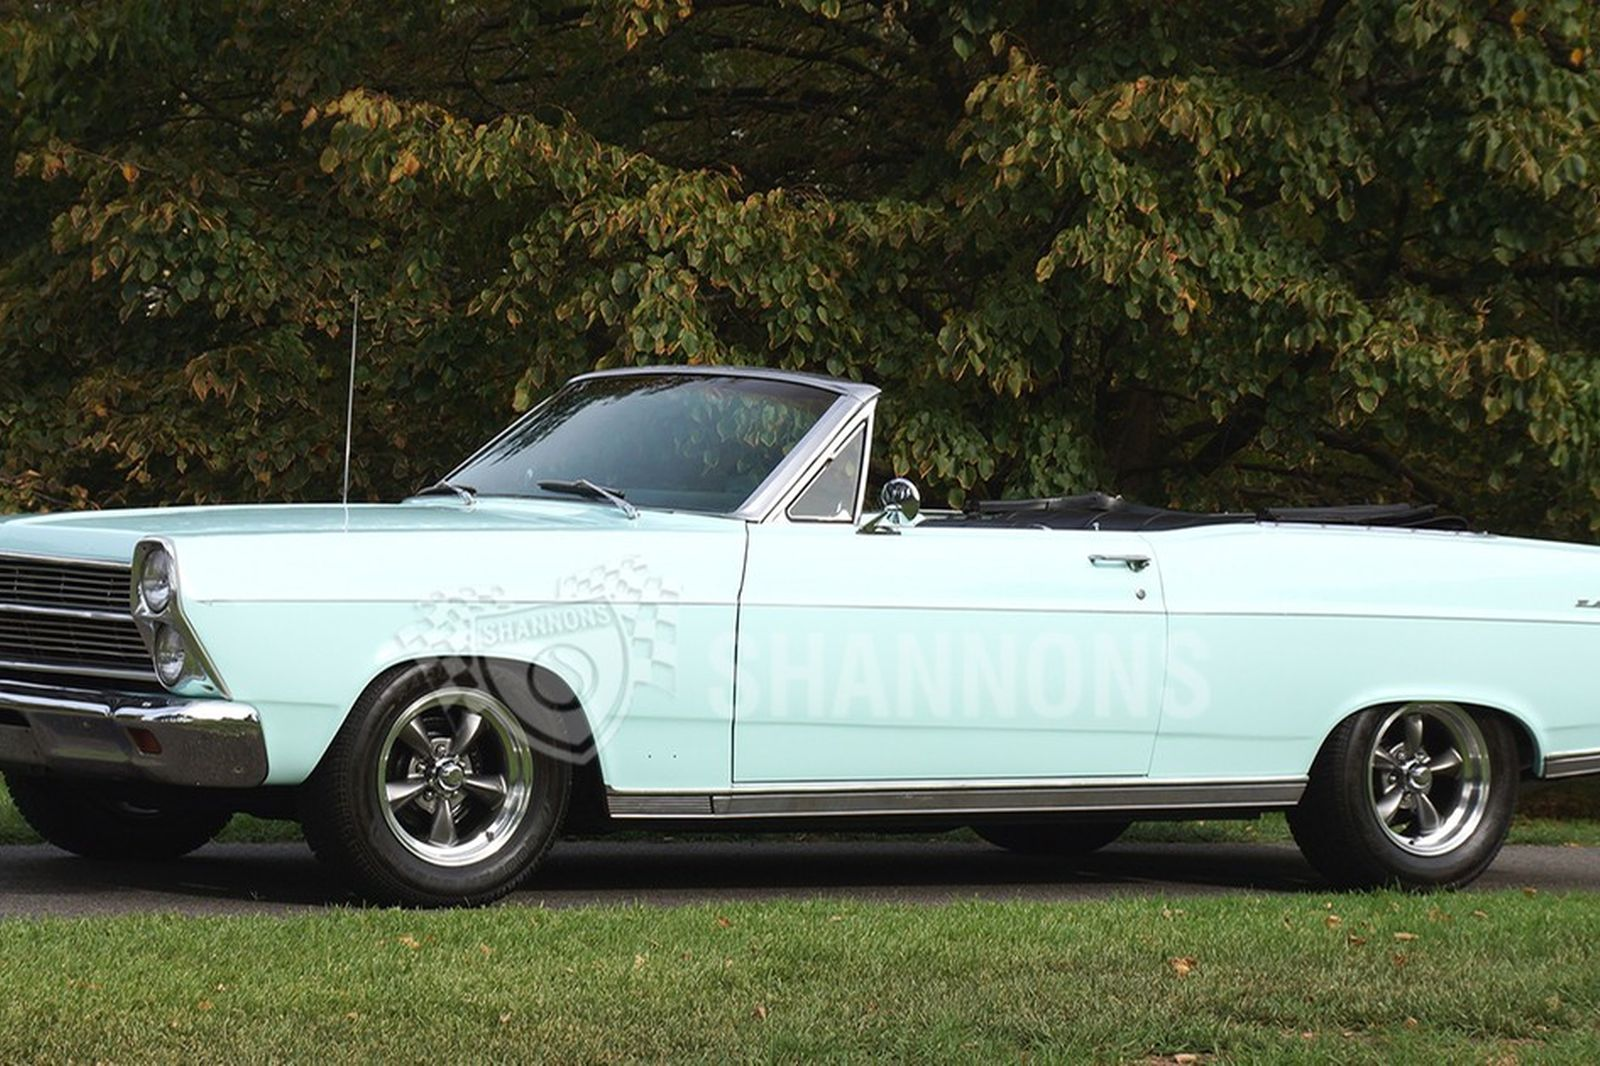 Ford fairlane 500 v8 convertible lhd